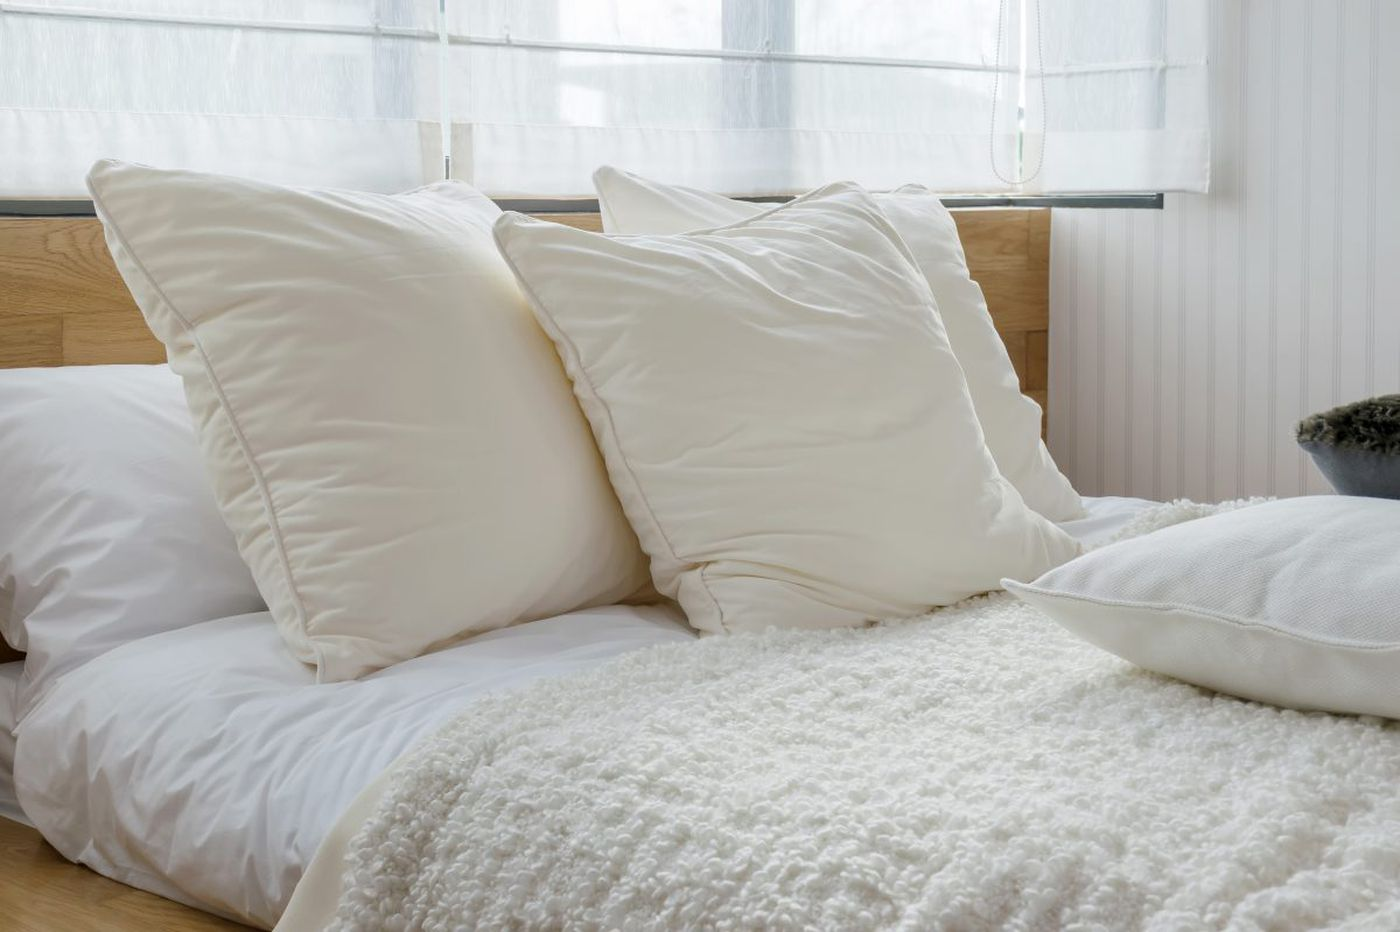 Ask Jennifer Adams: When should you replace your pillows?